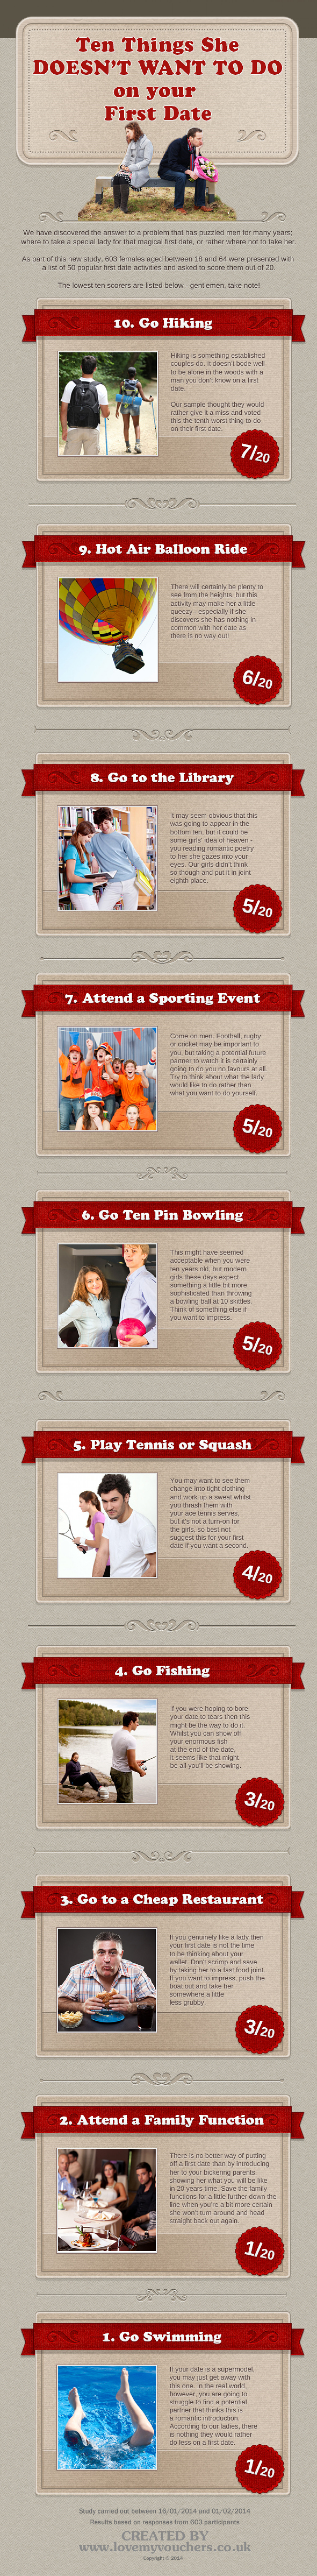 Where She Doesn't Want to Go on a First Date Infographic